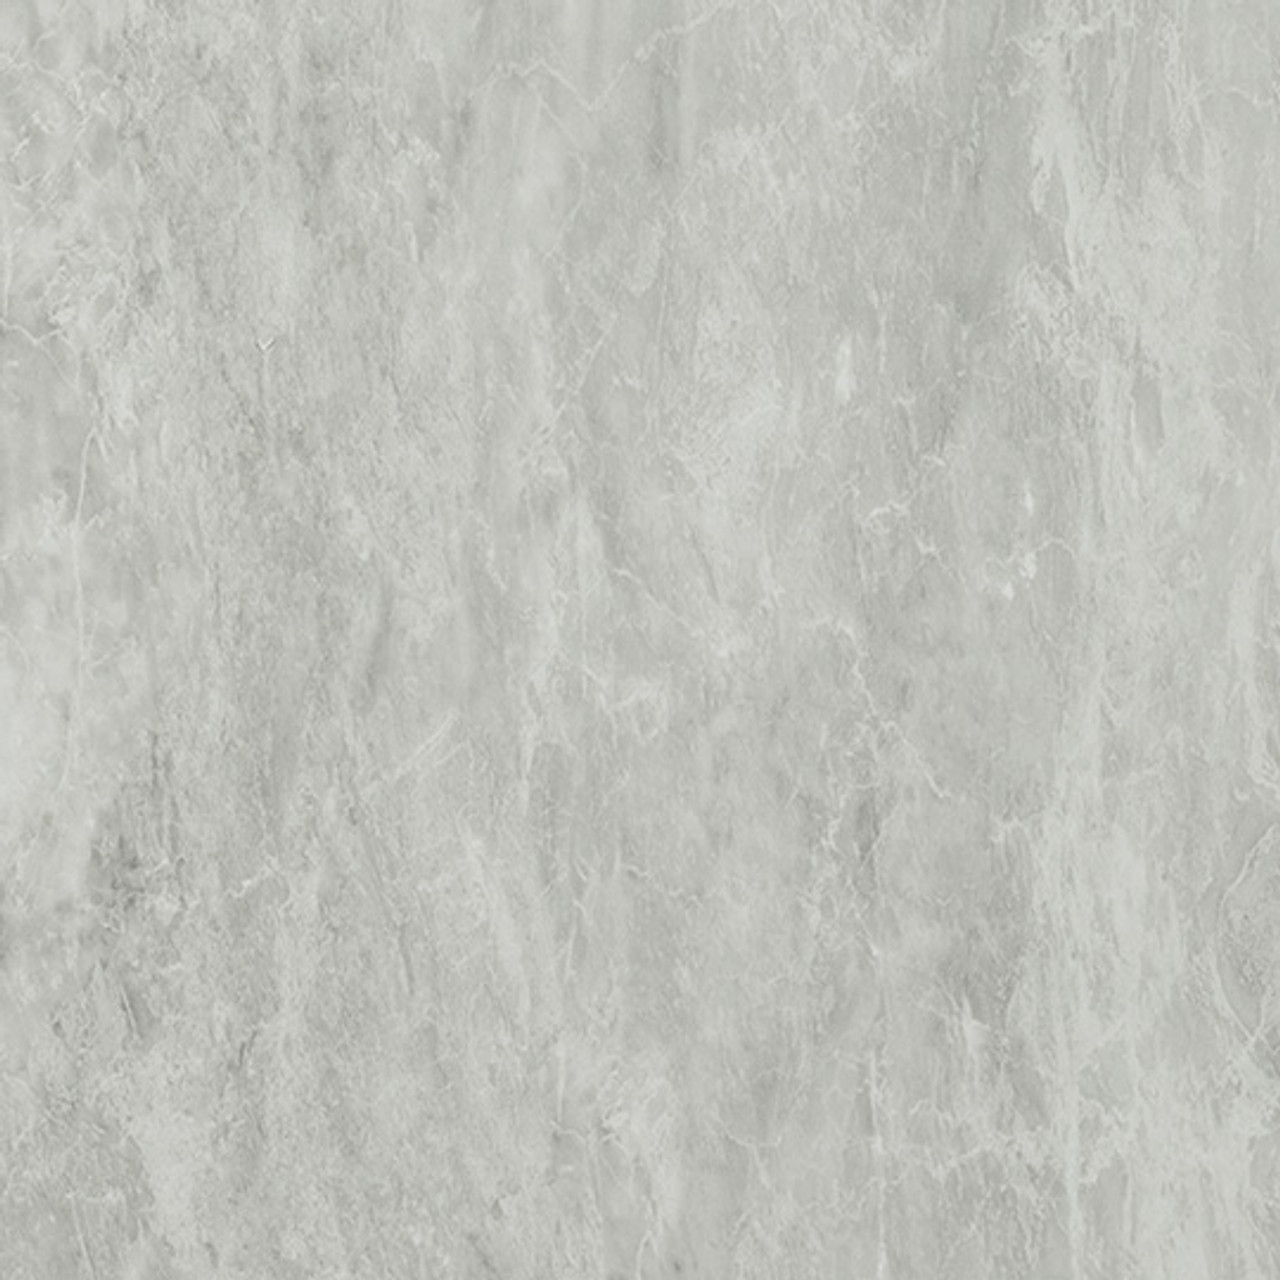 """Formica White Bardiglio Marble 9306  30""""x40"""" (set of 3)"""